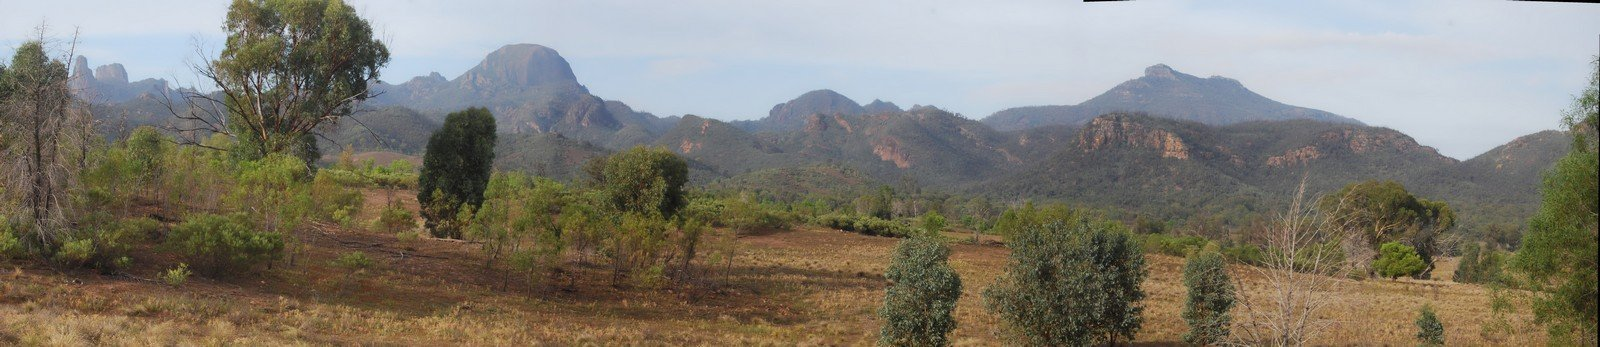 Warrumbungles from Belougery Flats